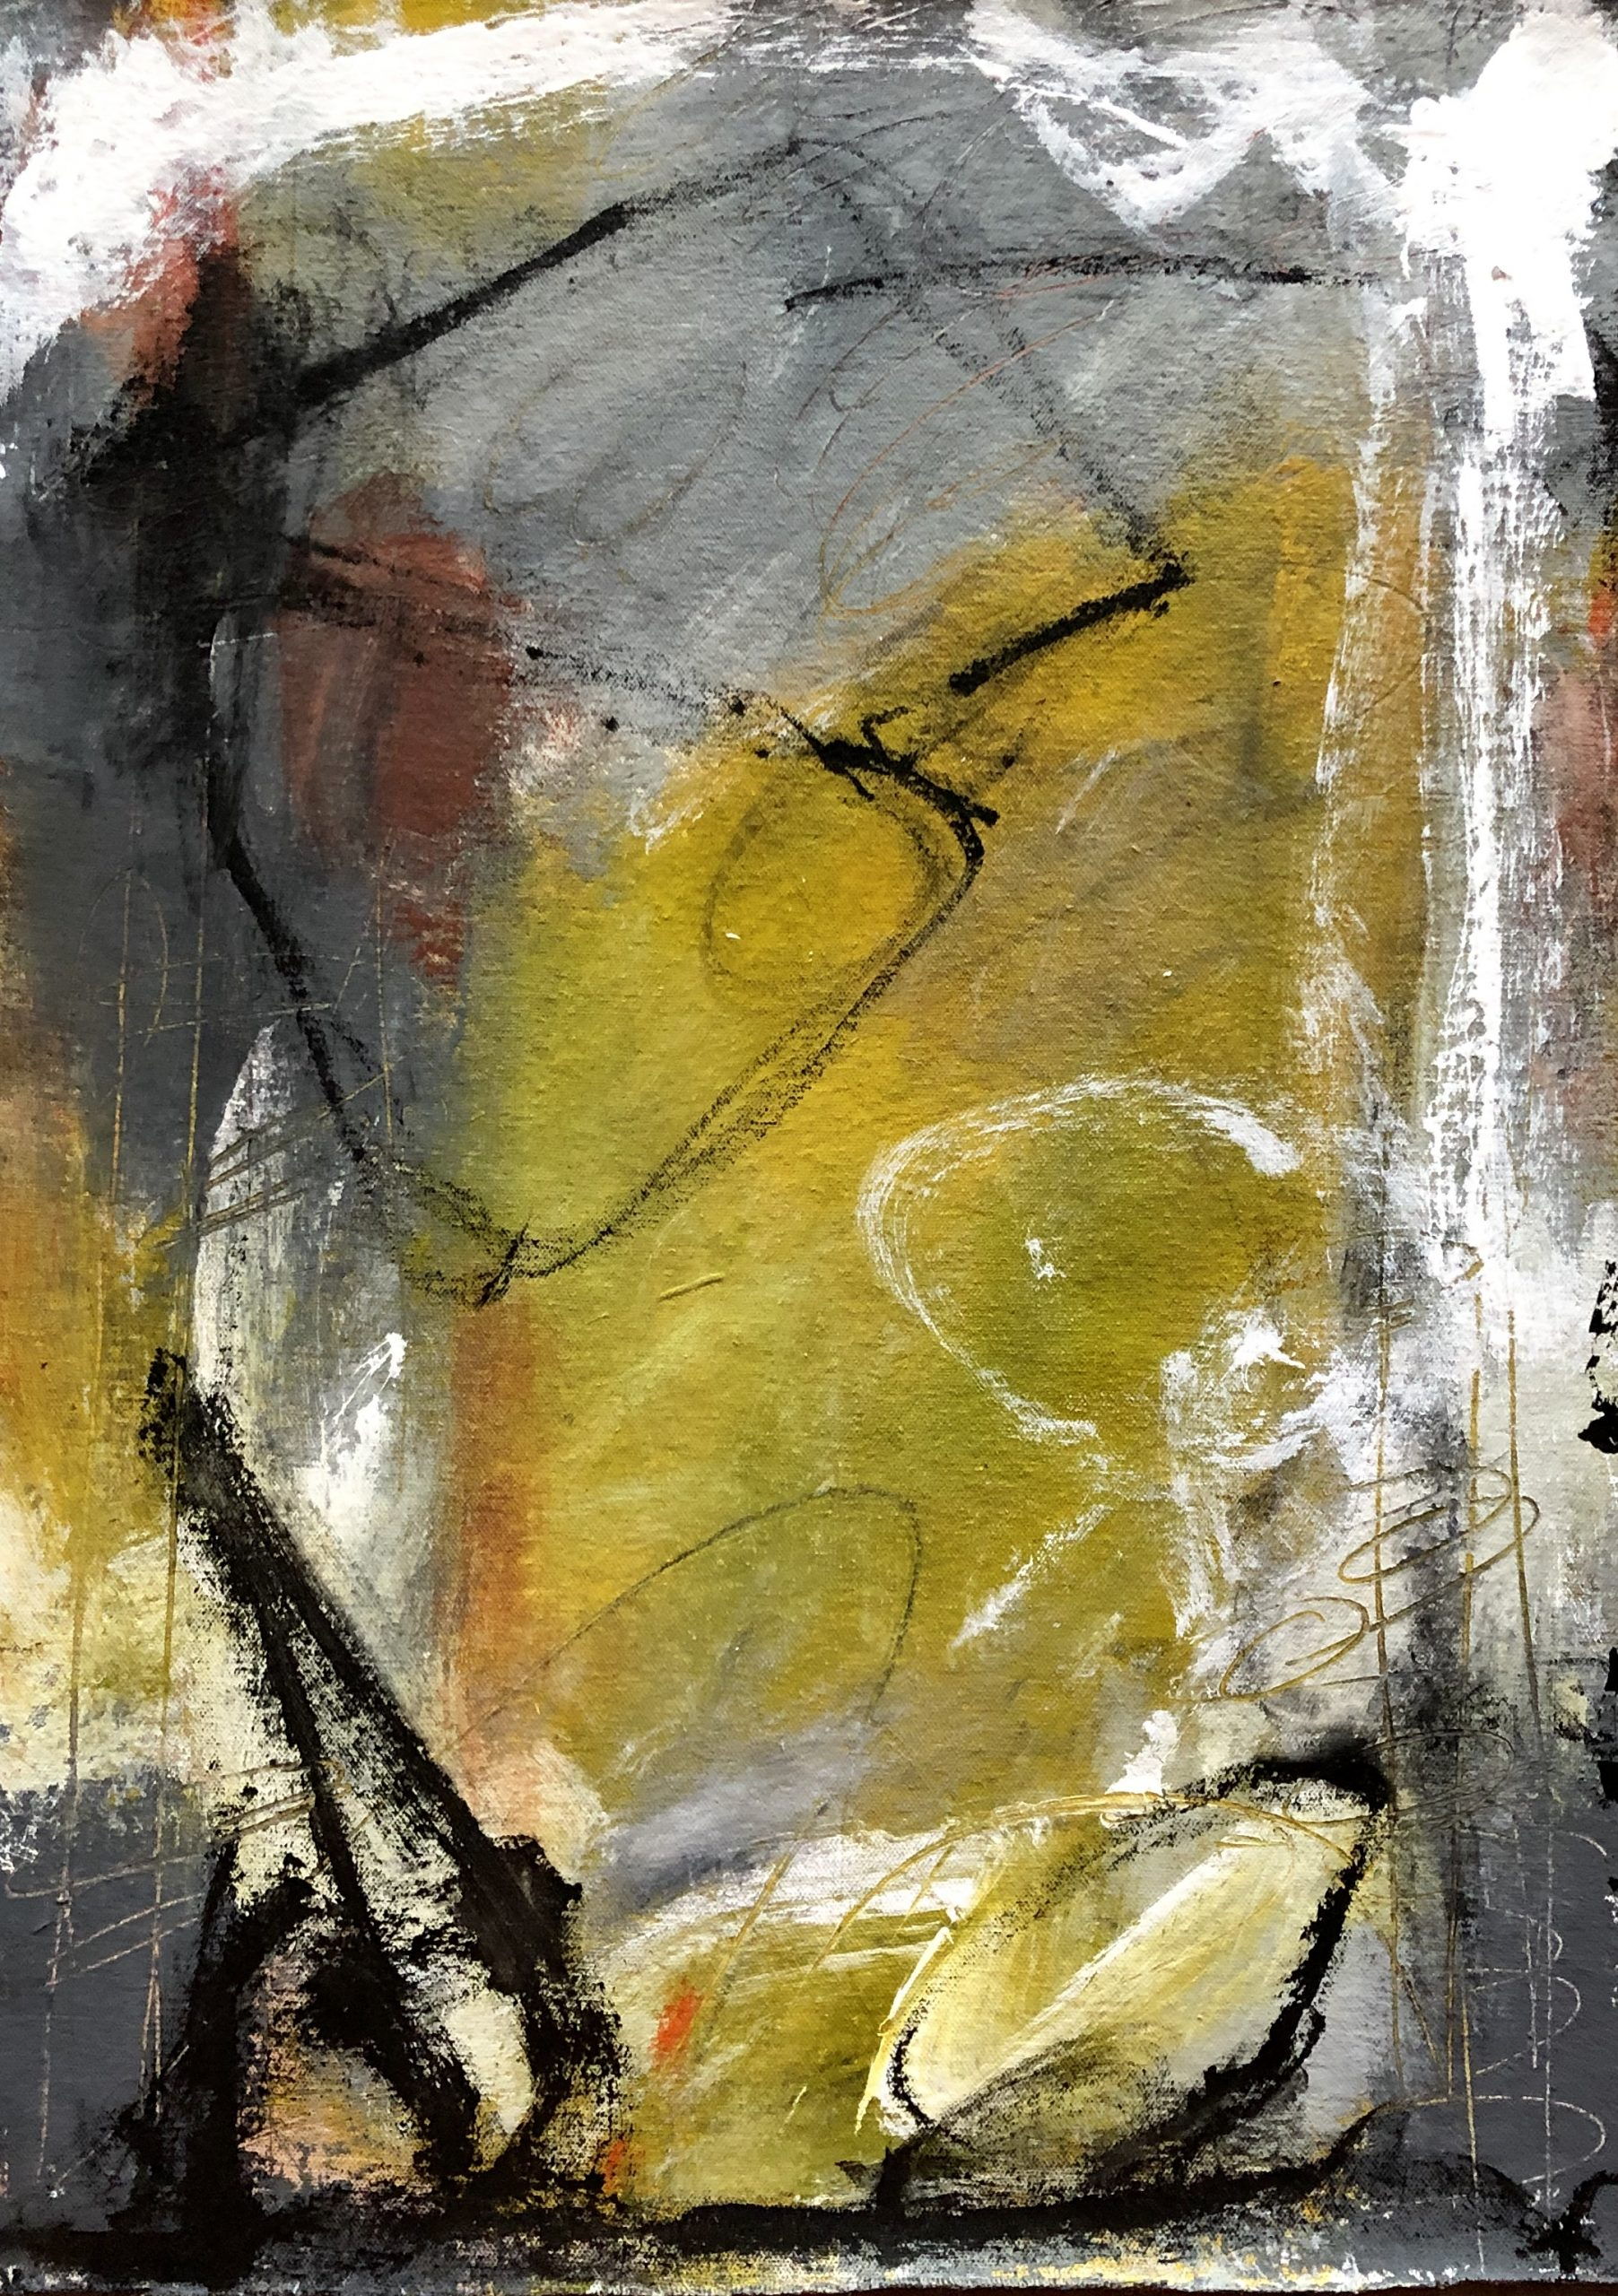 Entranced by the rain 3, an abstract painting